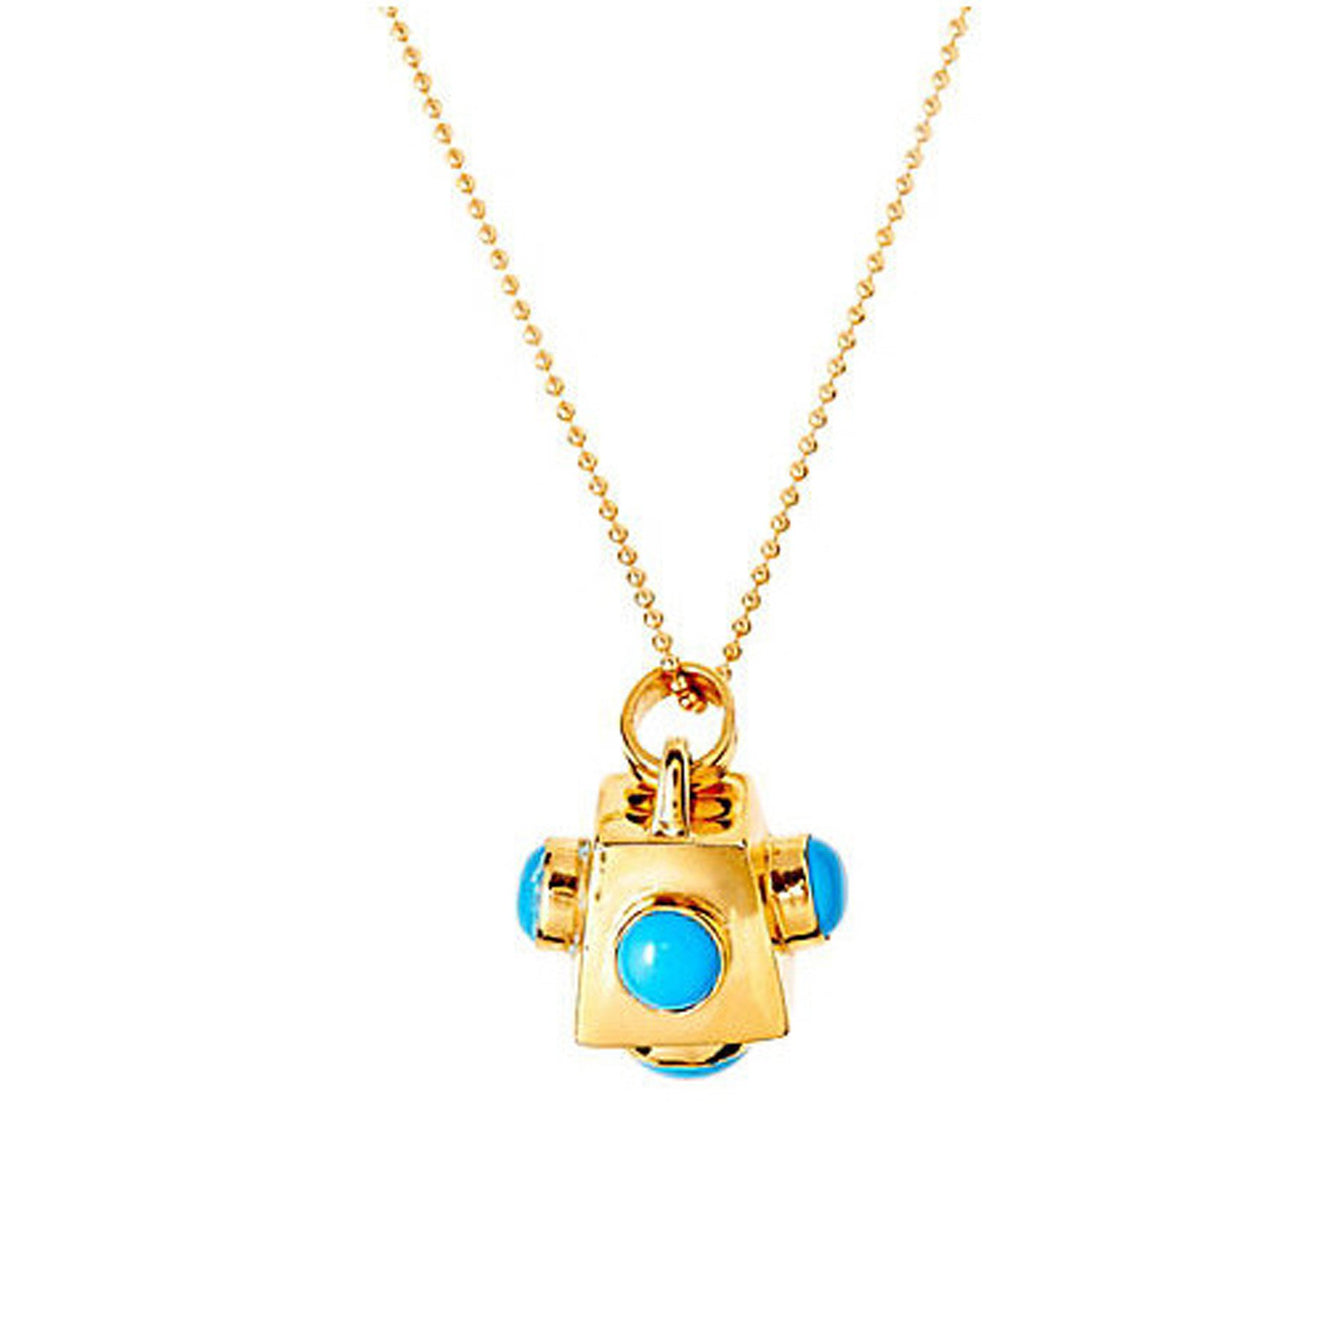 Cutchins Genuine Gemstone 24kt Gold Necklaces-women - jewelry - necklaces-ADDISON WEEKS-Blue Turquoise-Peccadilly